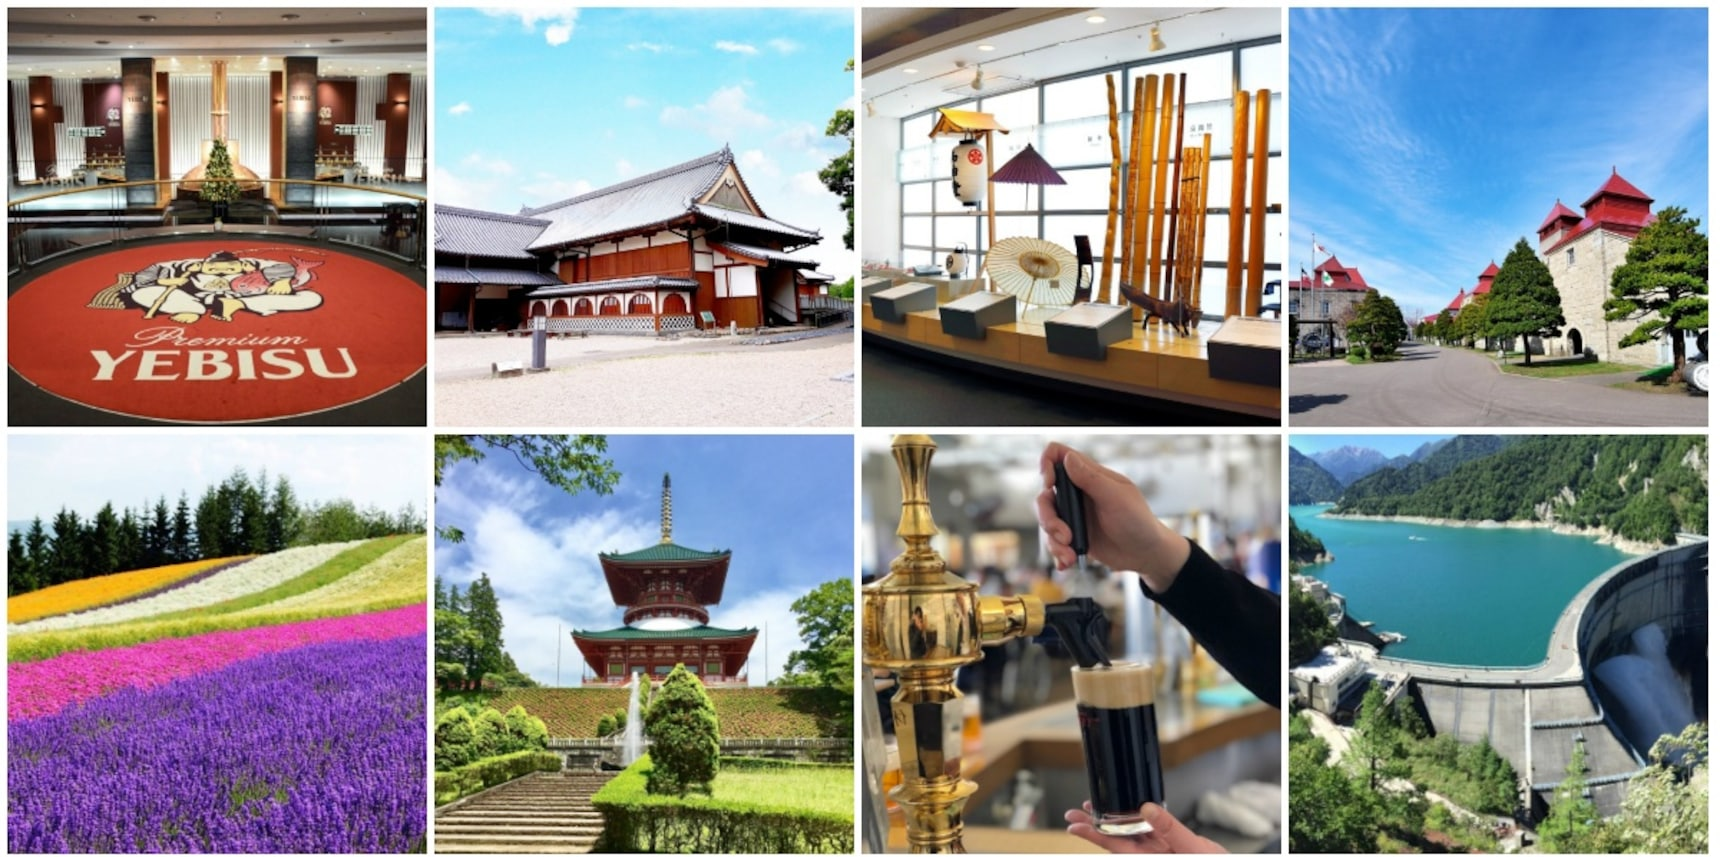 TripAdvisor's Top 20 Free Attractions in Japan